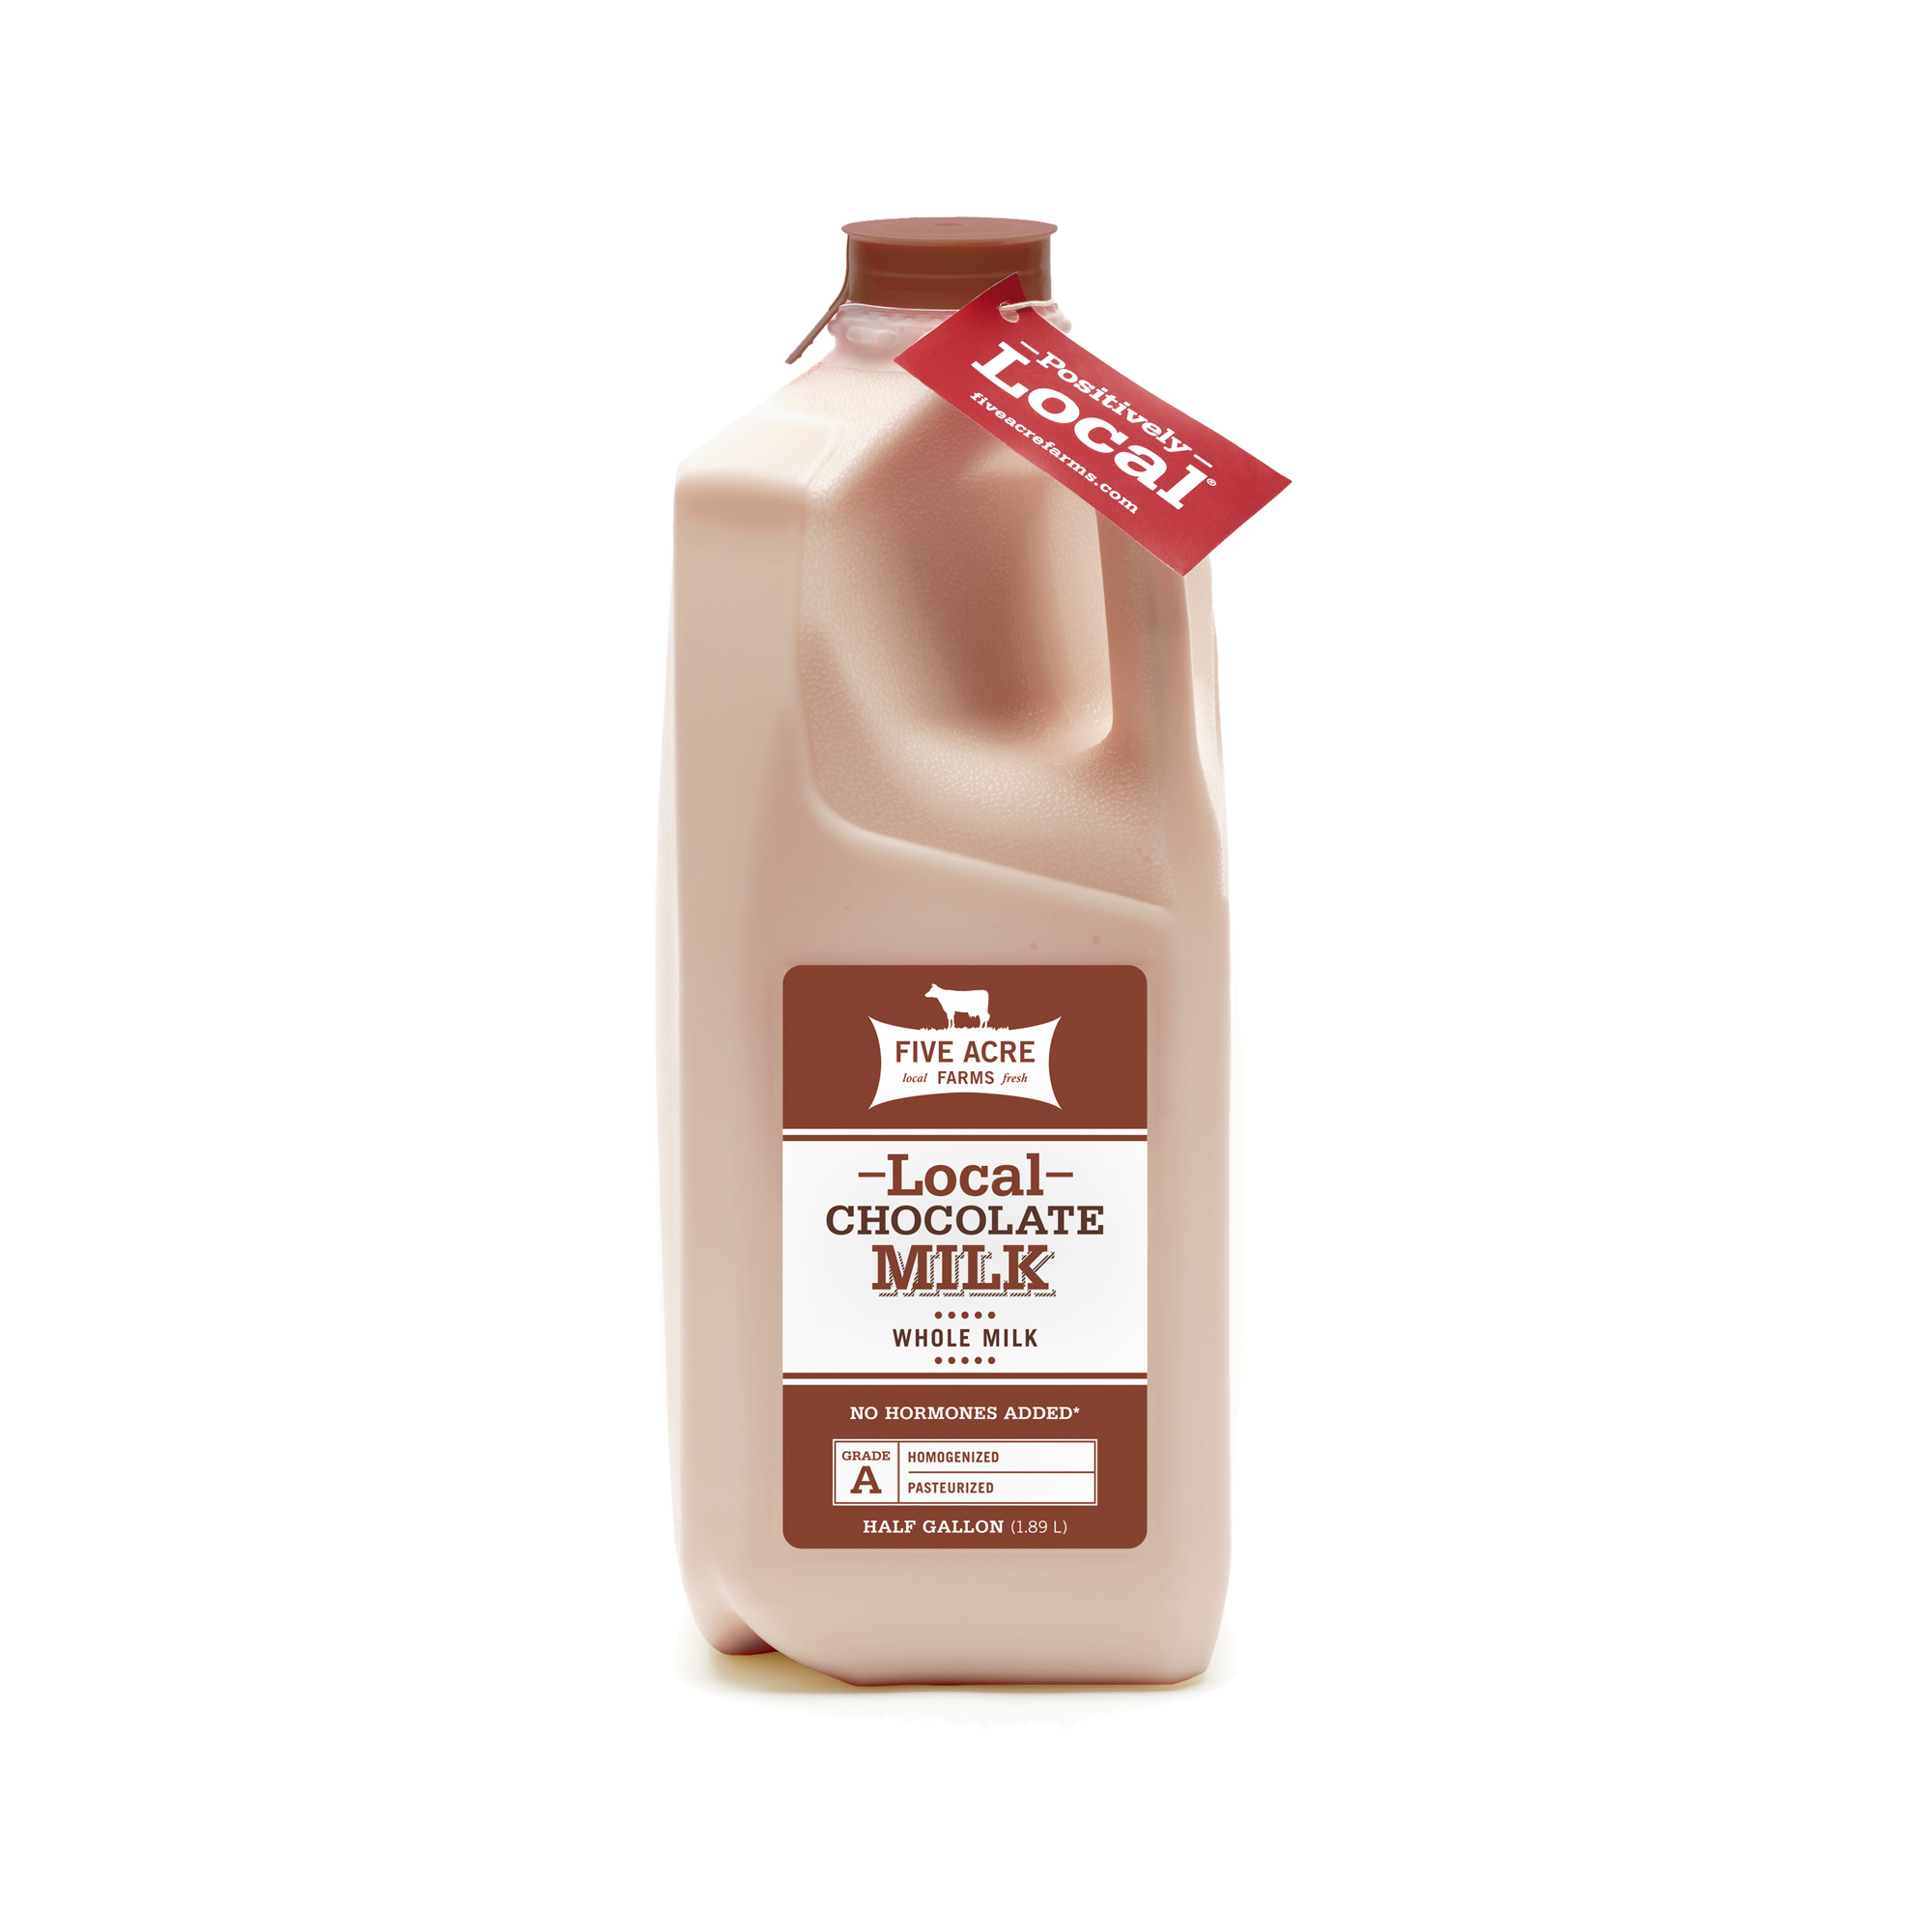 Five Acre Farms Local Chocolate Milk